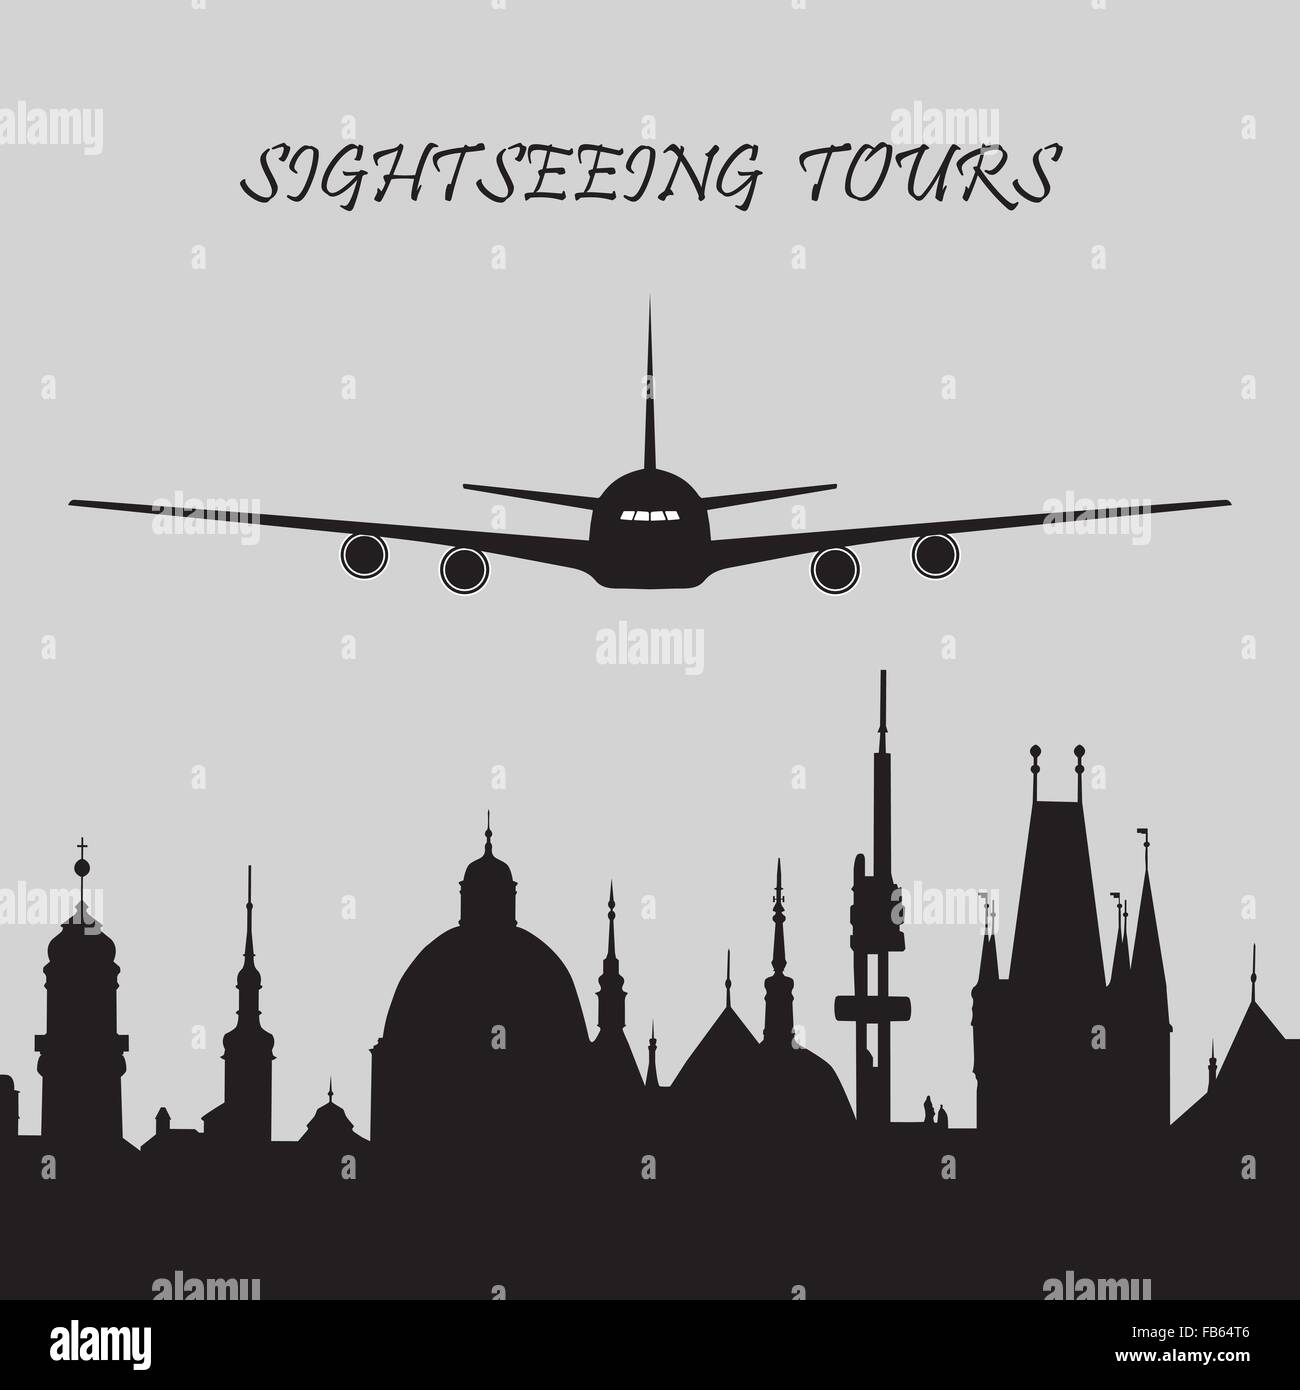 Black and white icon of sightseeing tours with a plane and cityscape of historical city. - Stock Vector